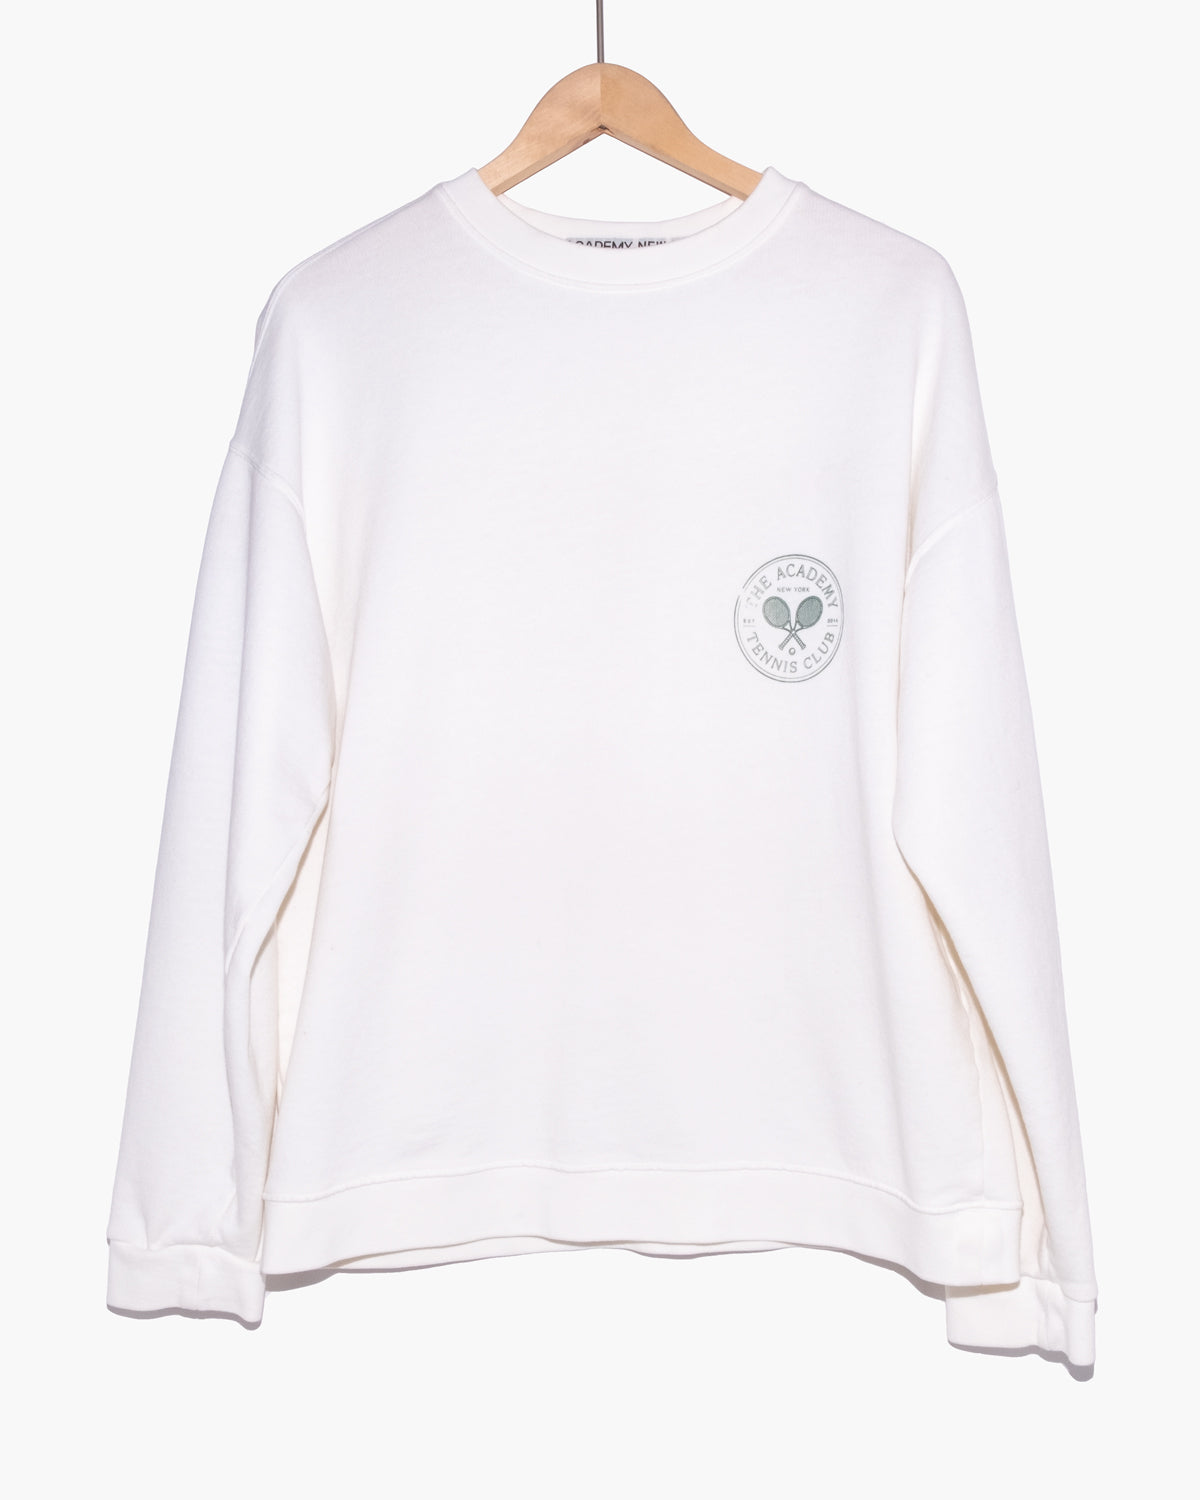 Tennis Club Logo Crew Neck Sweatshirt